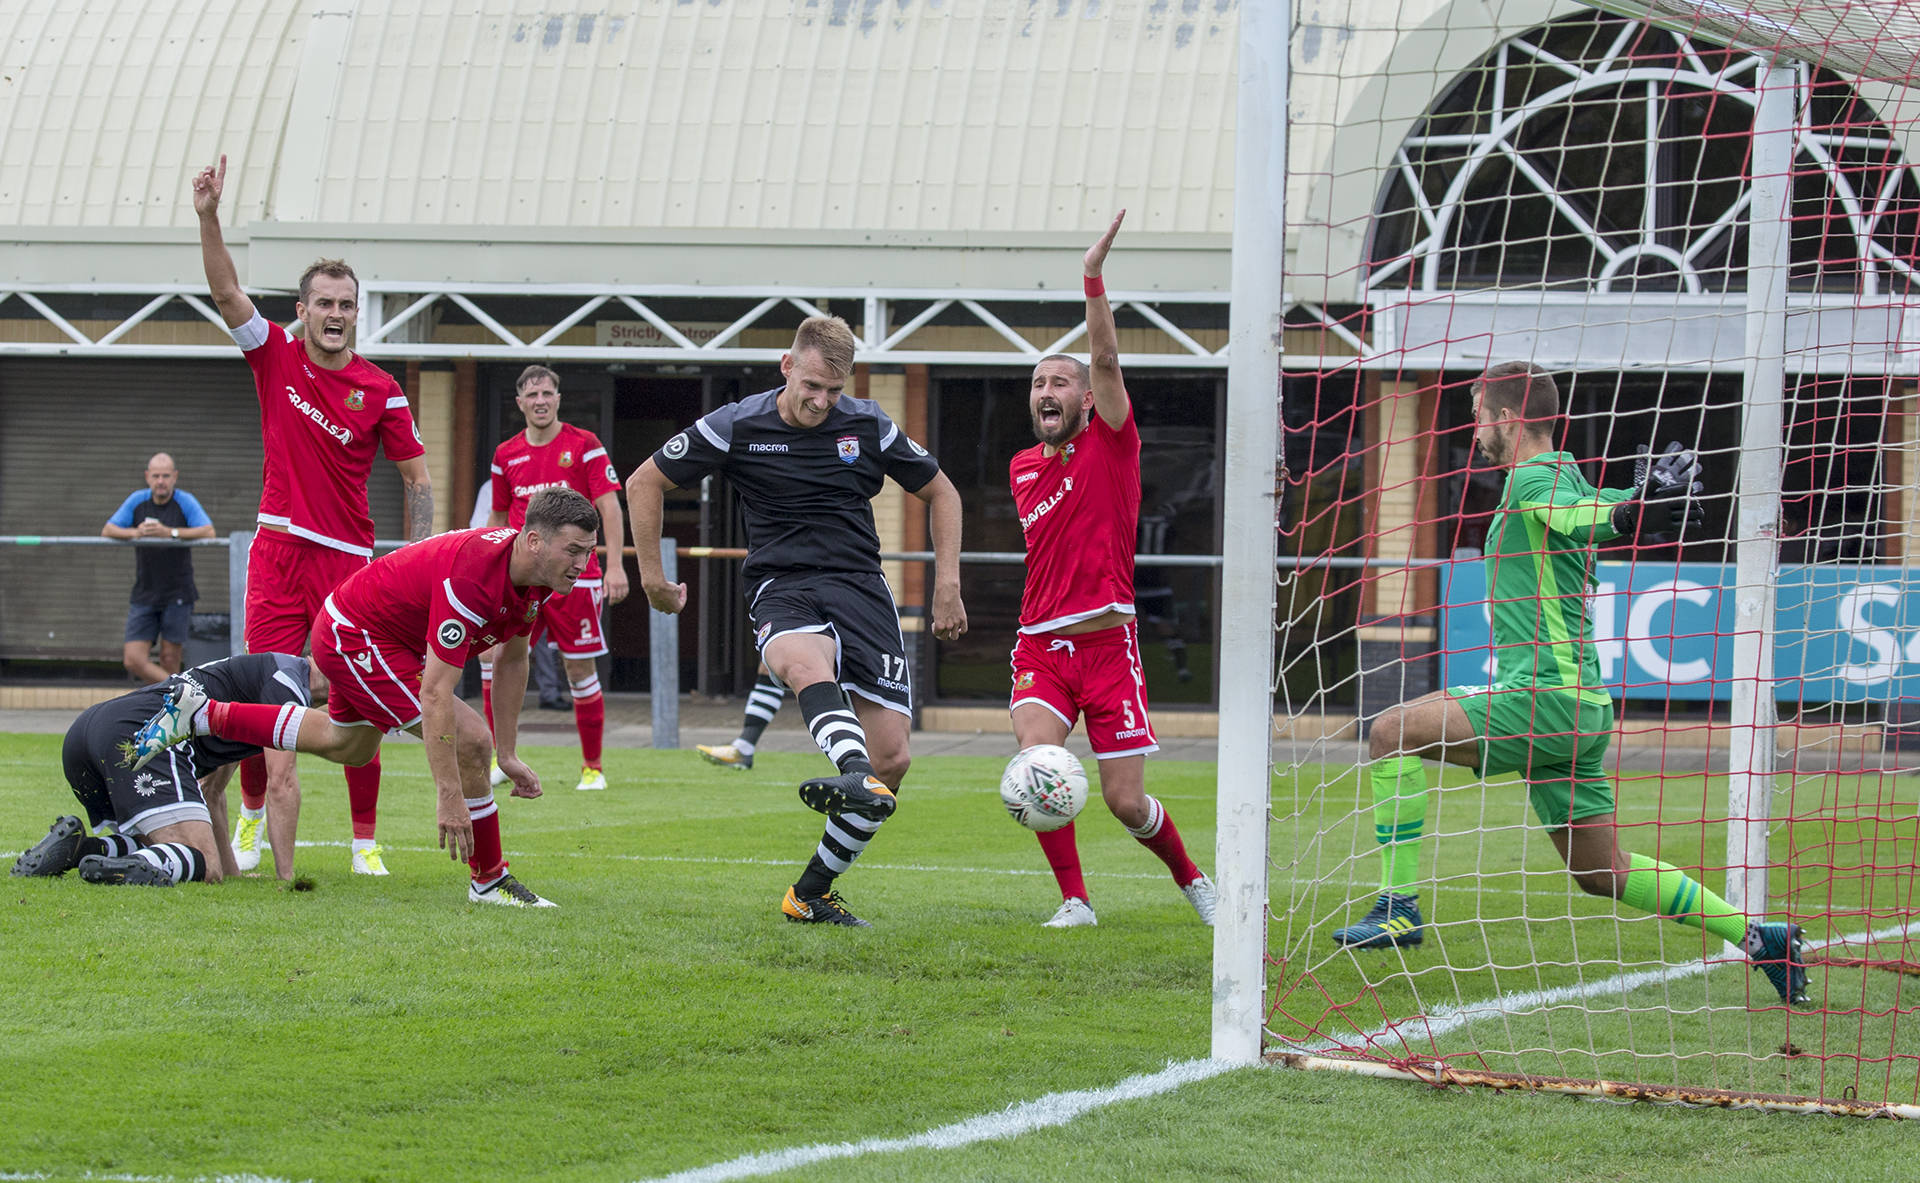 Nomads put seven past Llanelli in season opener